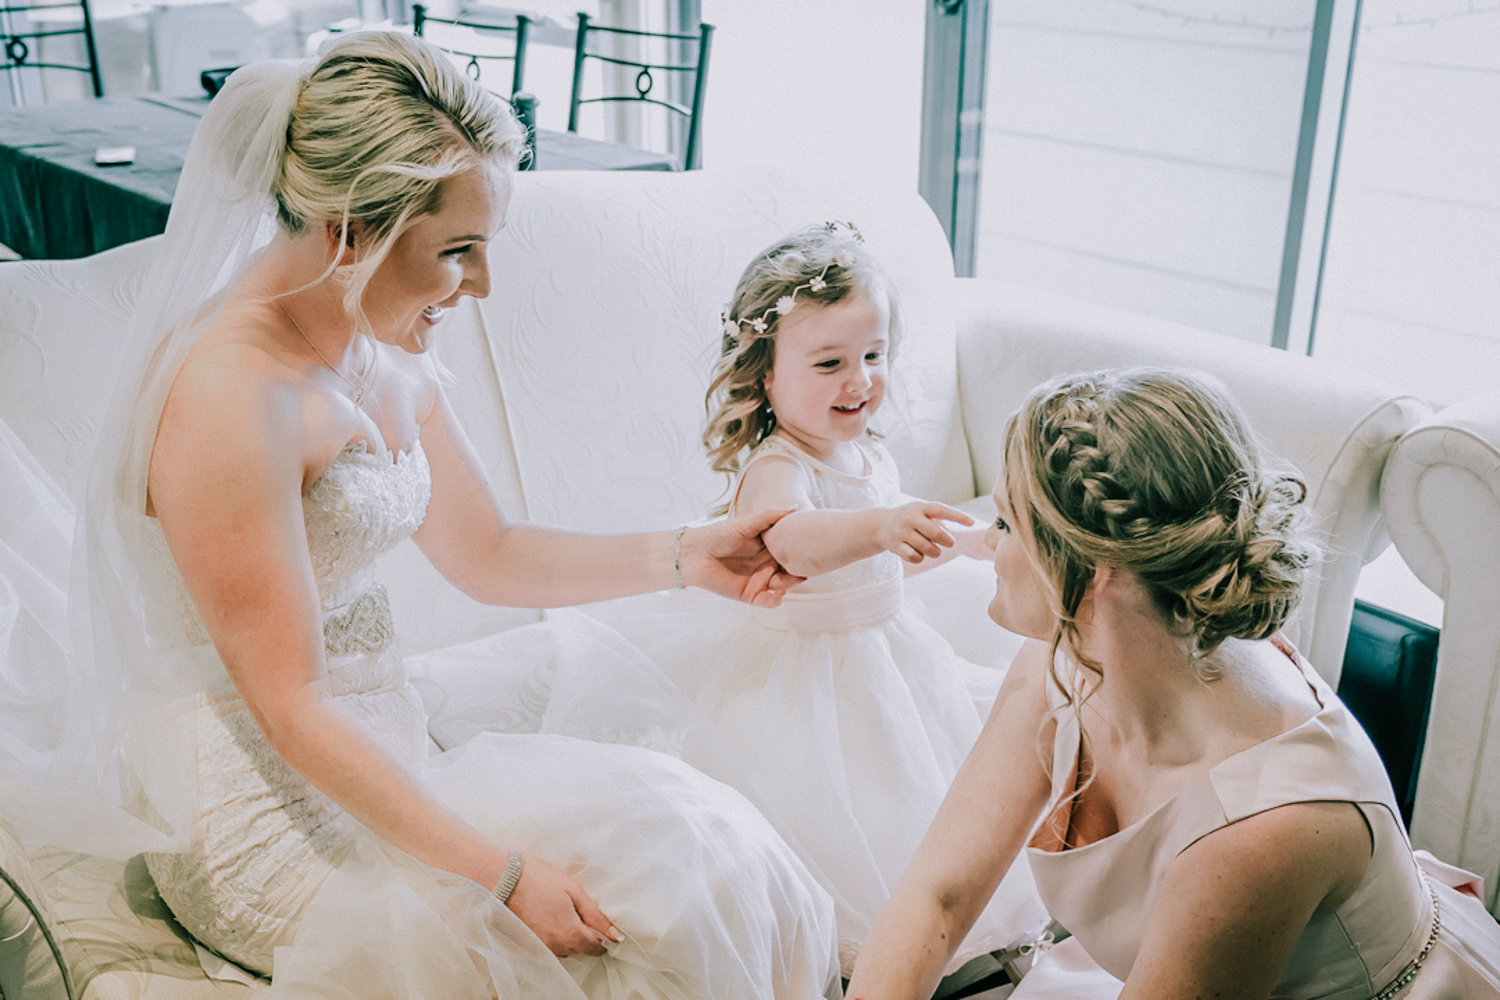 Candid vs Traditional Wedding Photography image showing bride having fun with flower girl captured by Black Avenue Productions